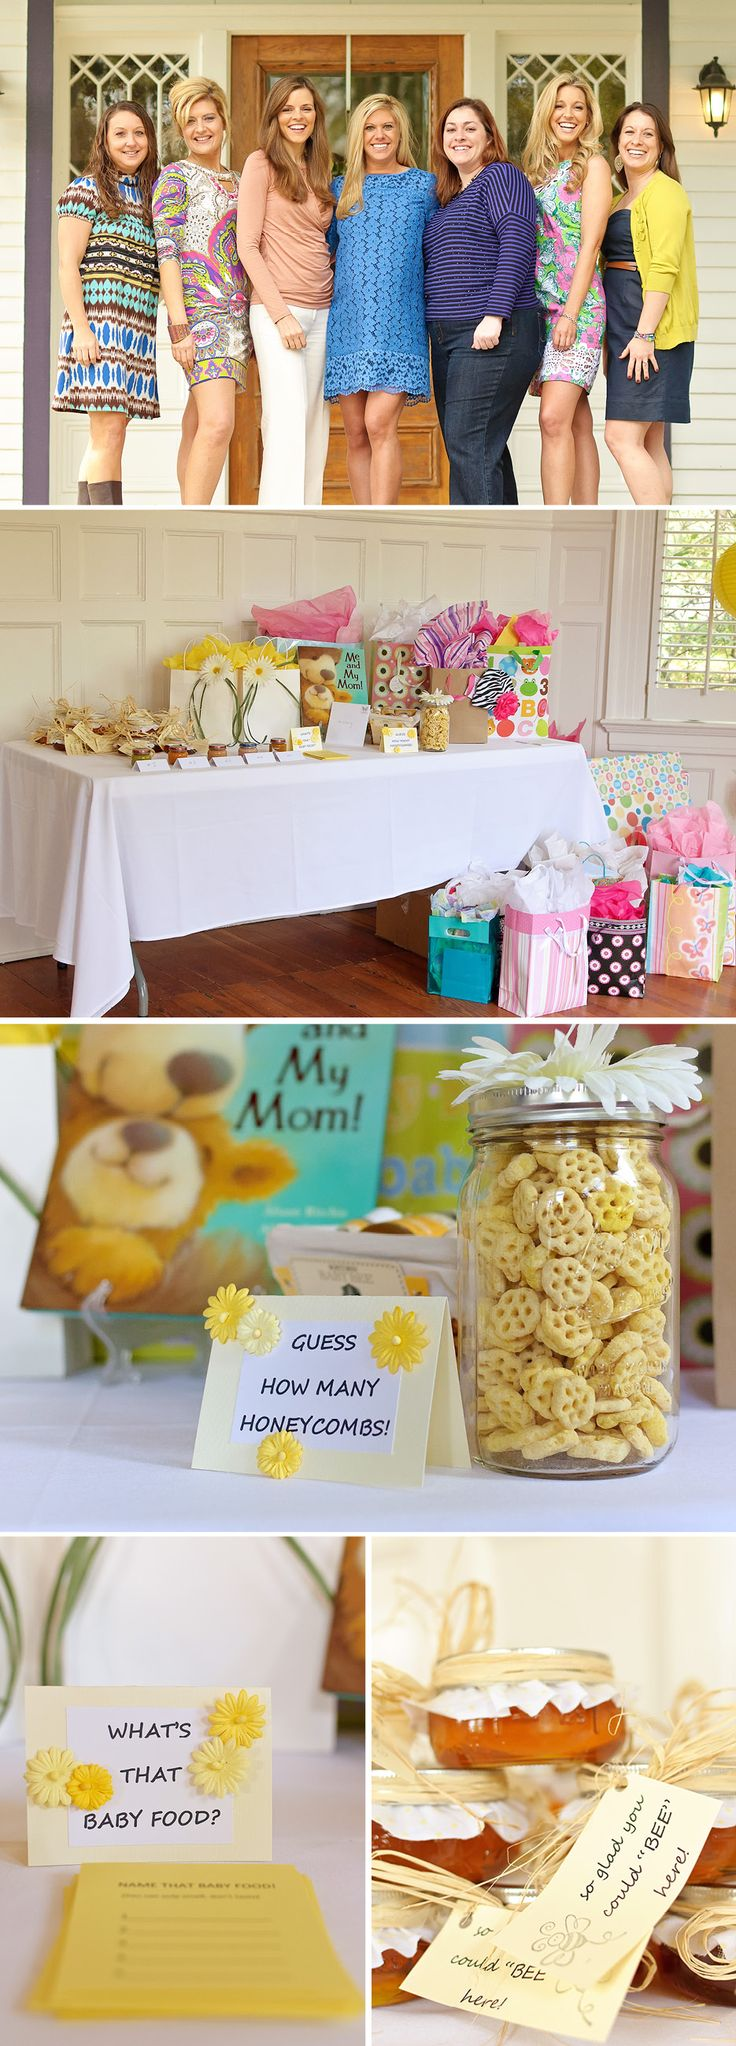 "When Kristin Klingshirn threw a baby shower for her friend Brittany Barnes, she brought together the perfect blend of sentimental and sweet. Instead of throwing a typical pink baby girl shower, Kristin used her longtime nickname for Brittany, ""Bee,"" as a source of inspiration for the yellow and ivory color palette, abundance of flowers, and …"